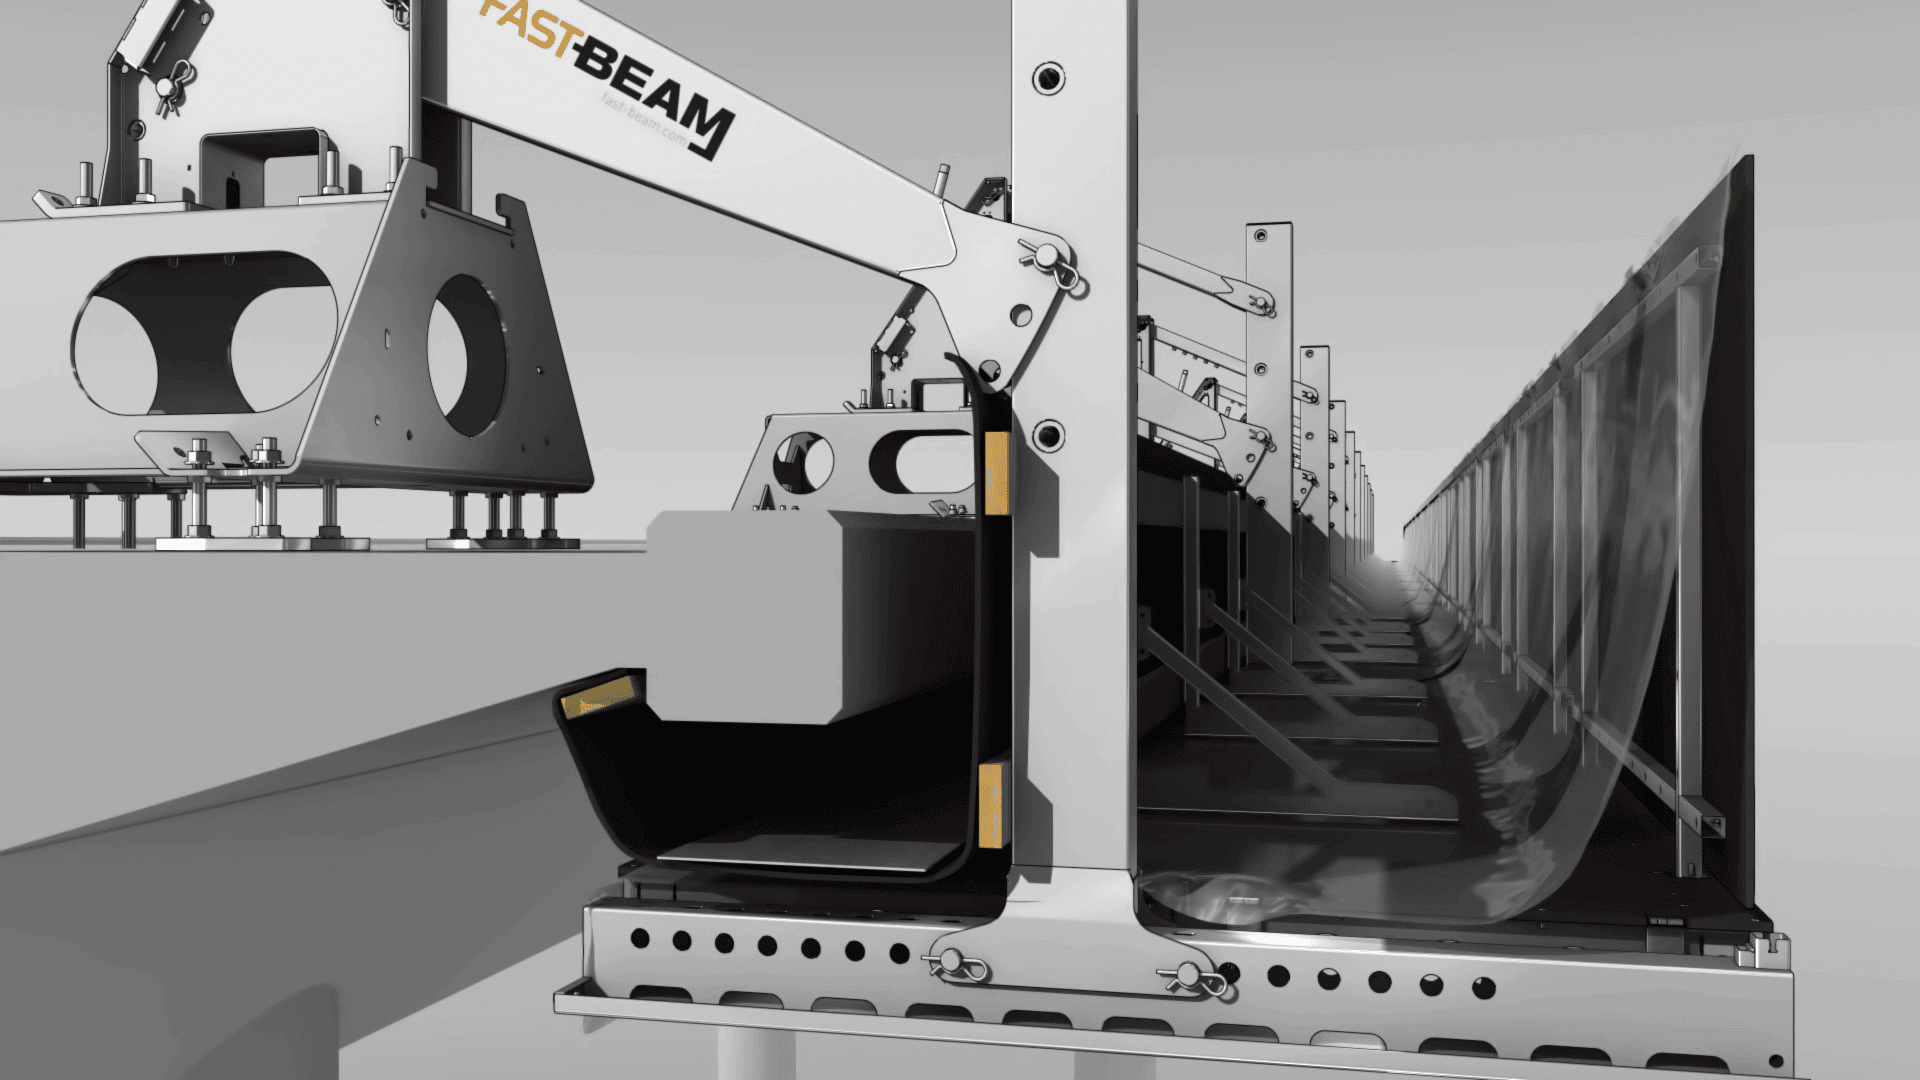 Fast Beam hydrodemolition solutions